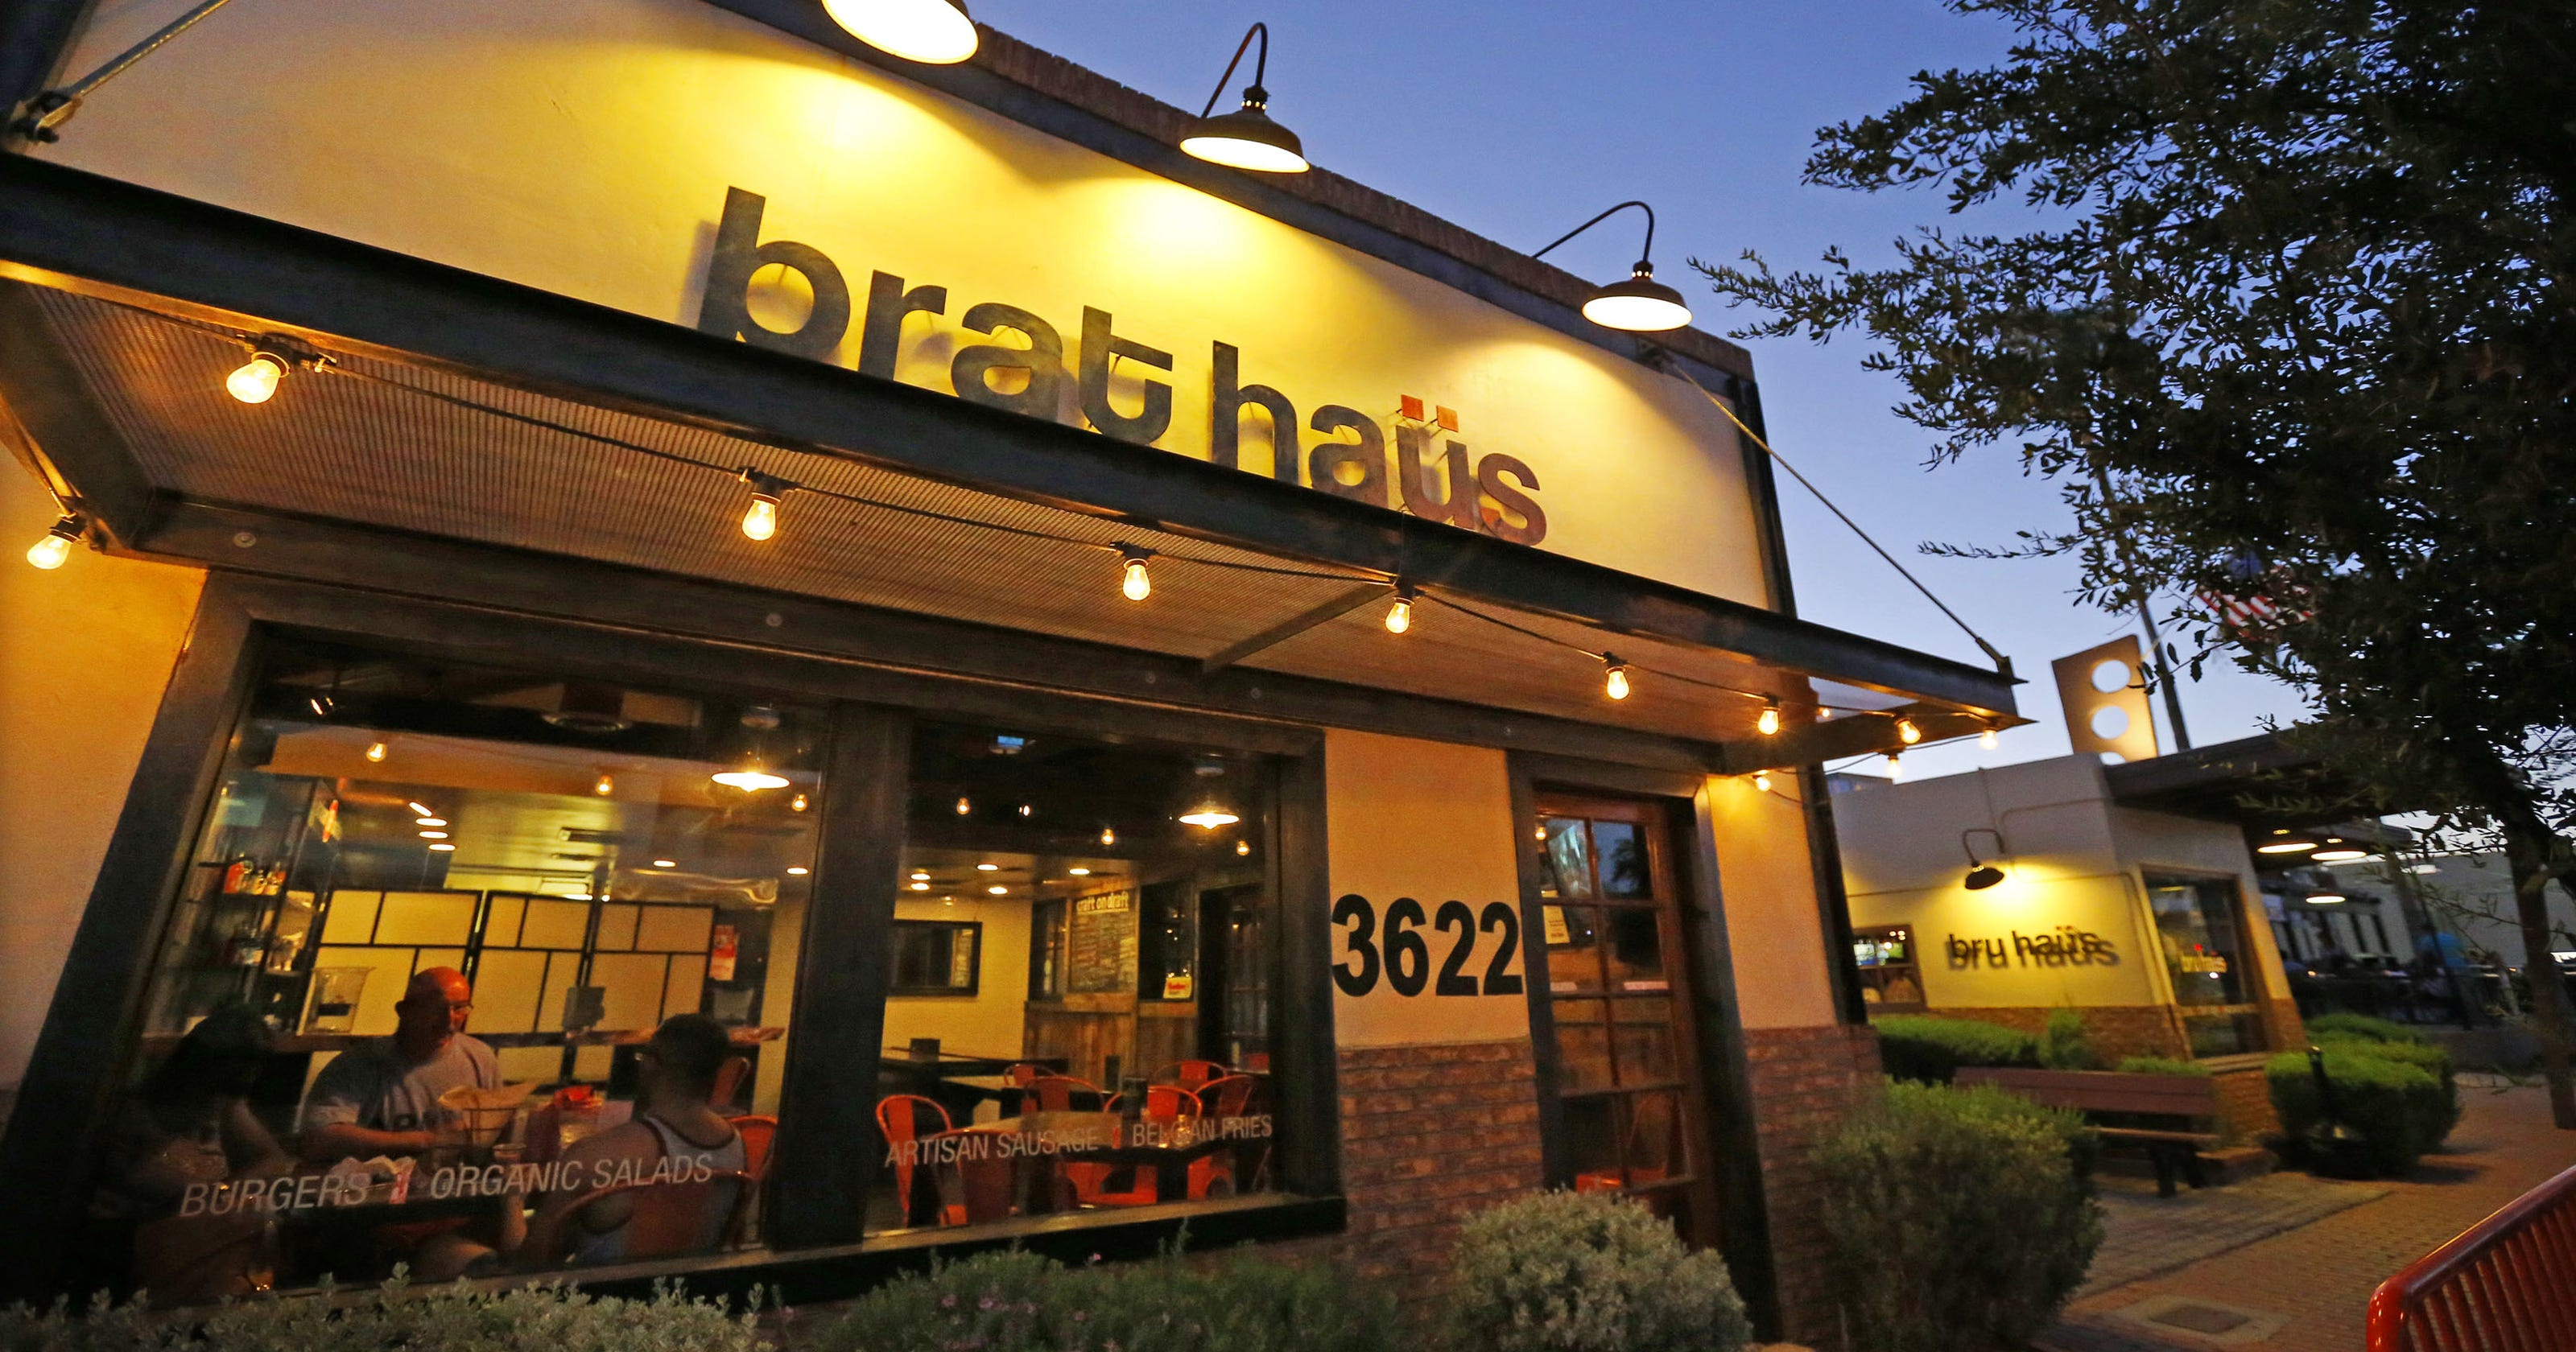 Hey Millennials, these 10 Valley restaurants are for you